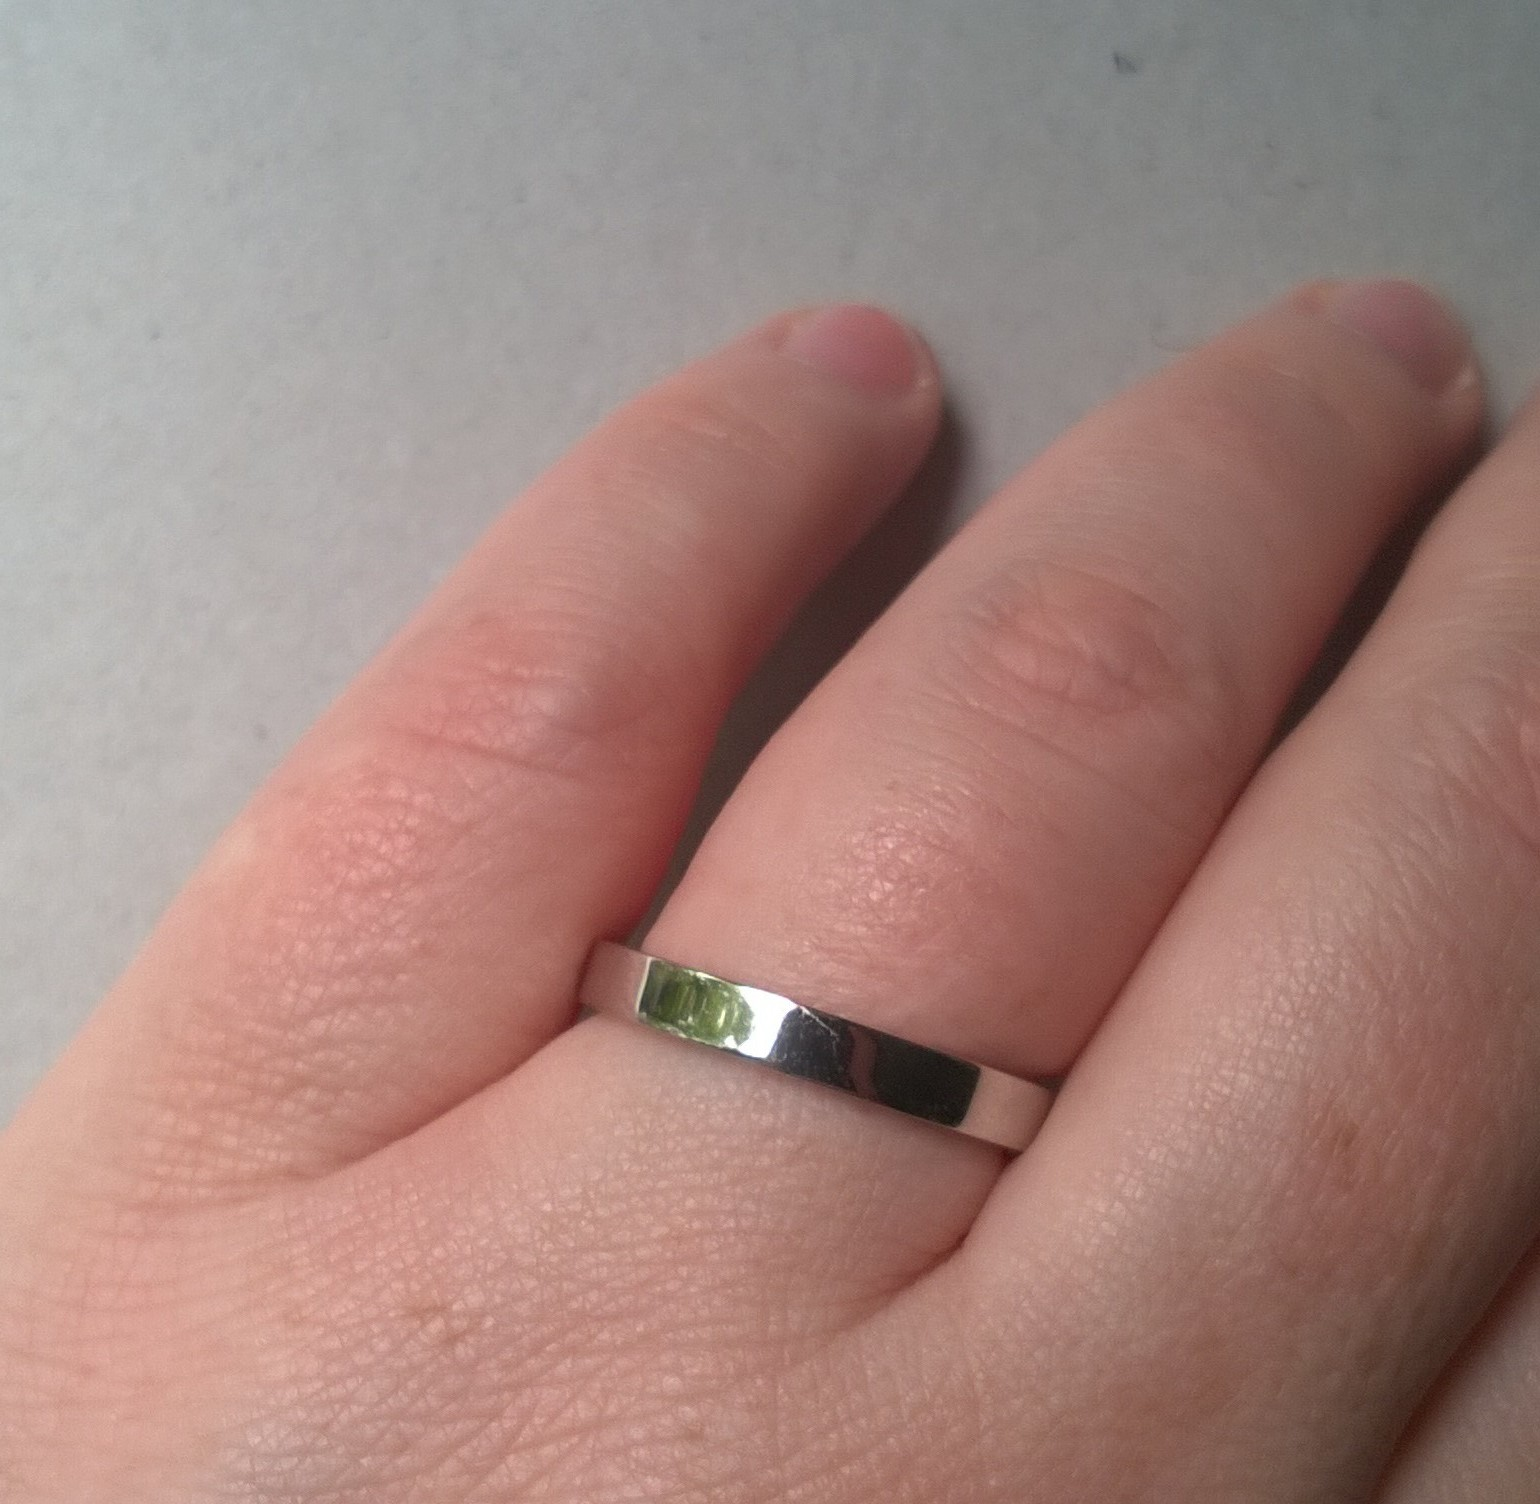 HELP! I think I might hate my wedding ring!